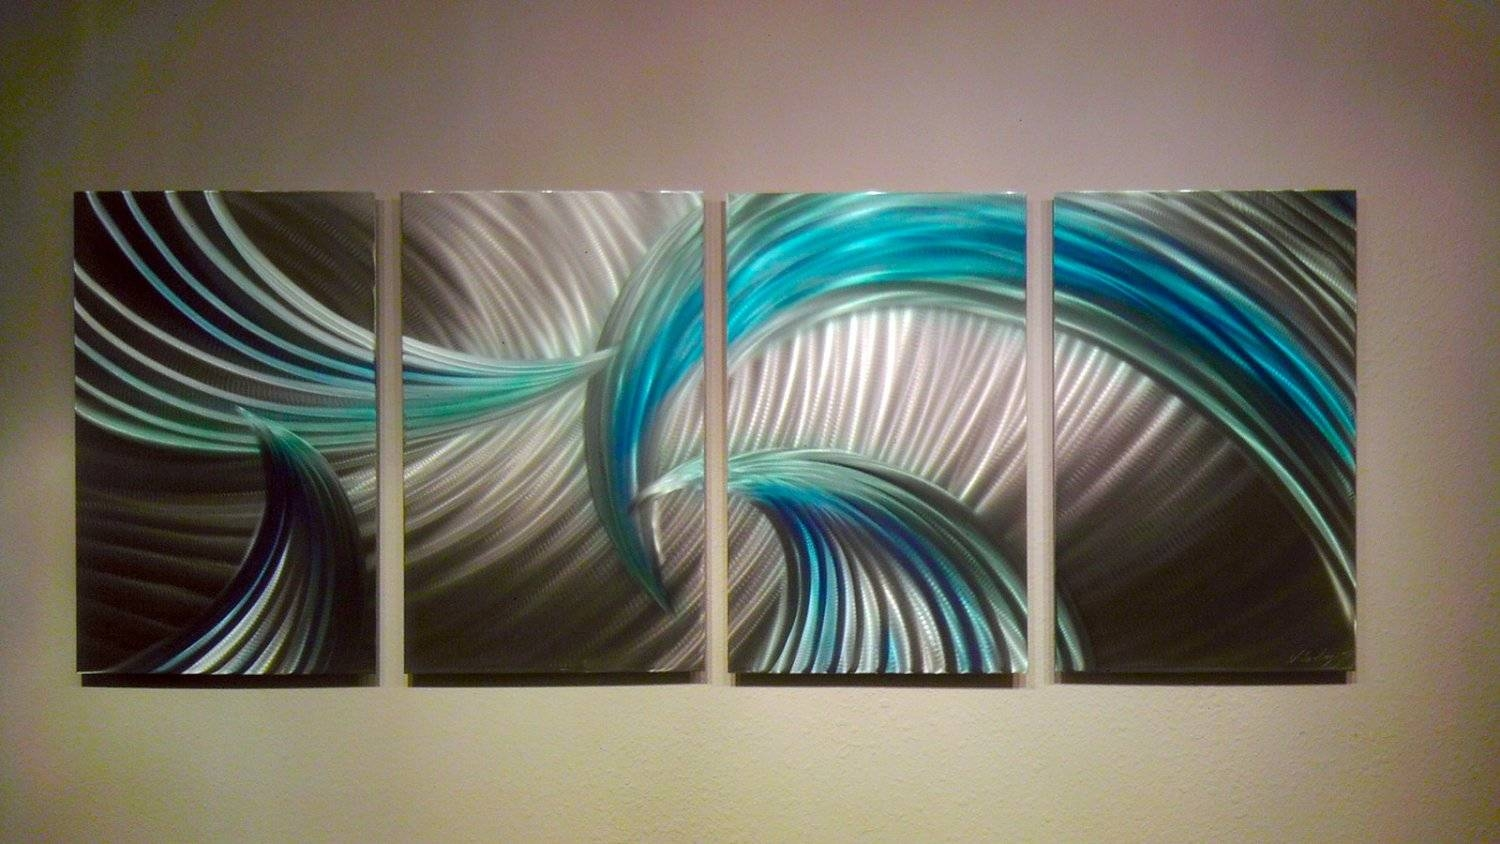 Download Innovative Wall Art | Widaus Home Design Within Current Handmade Metal Wall Art (View 5 of 20)